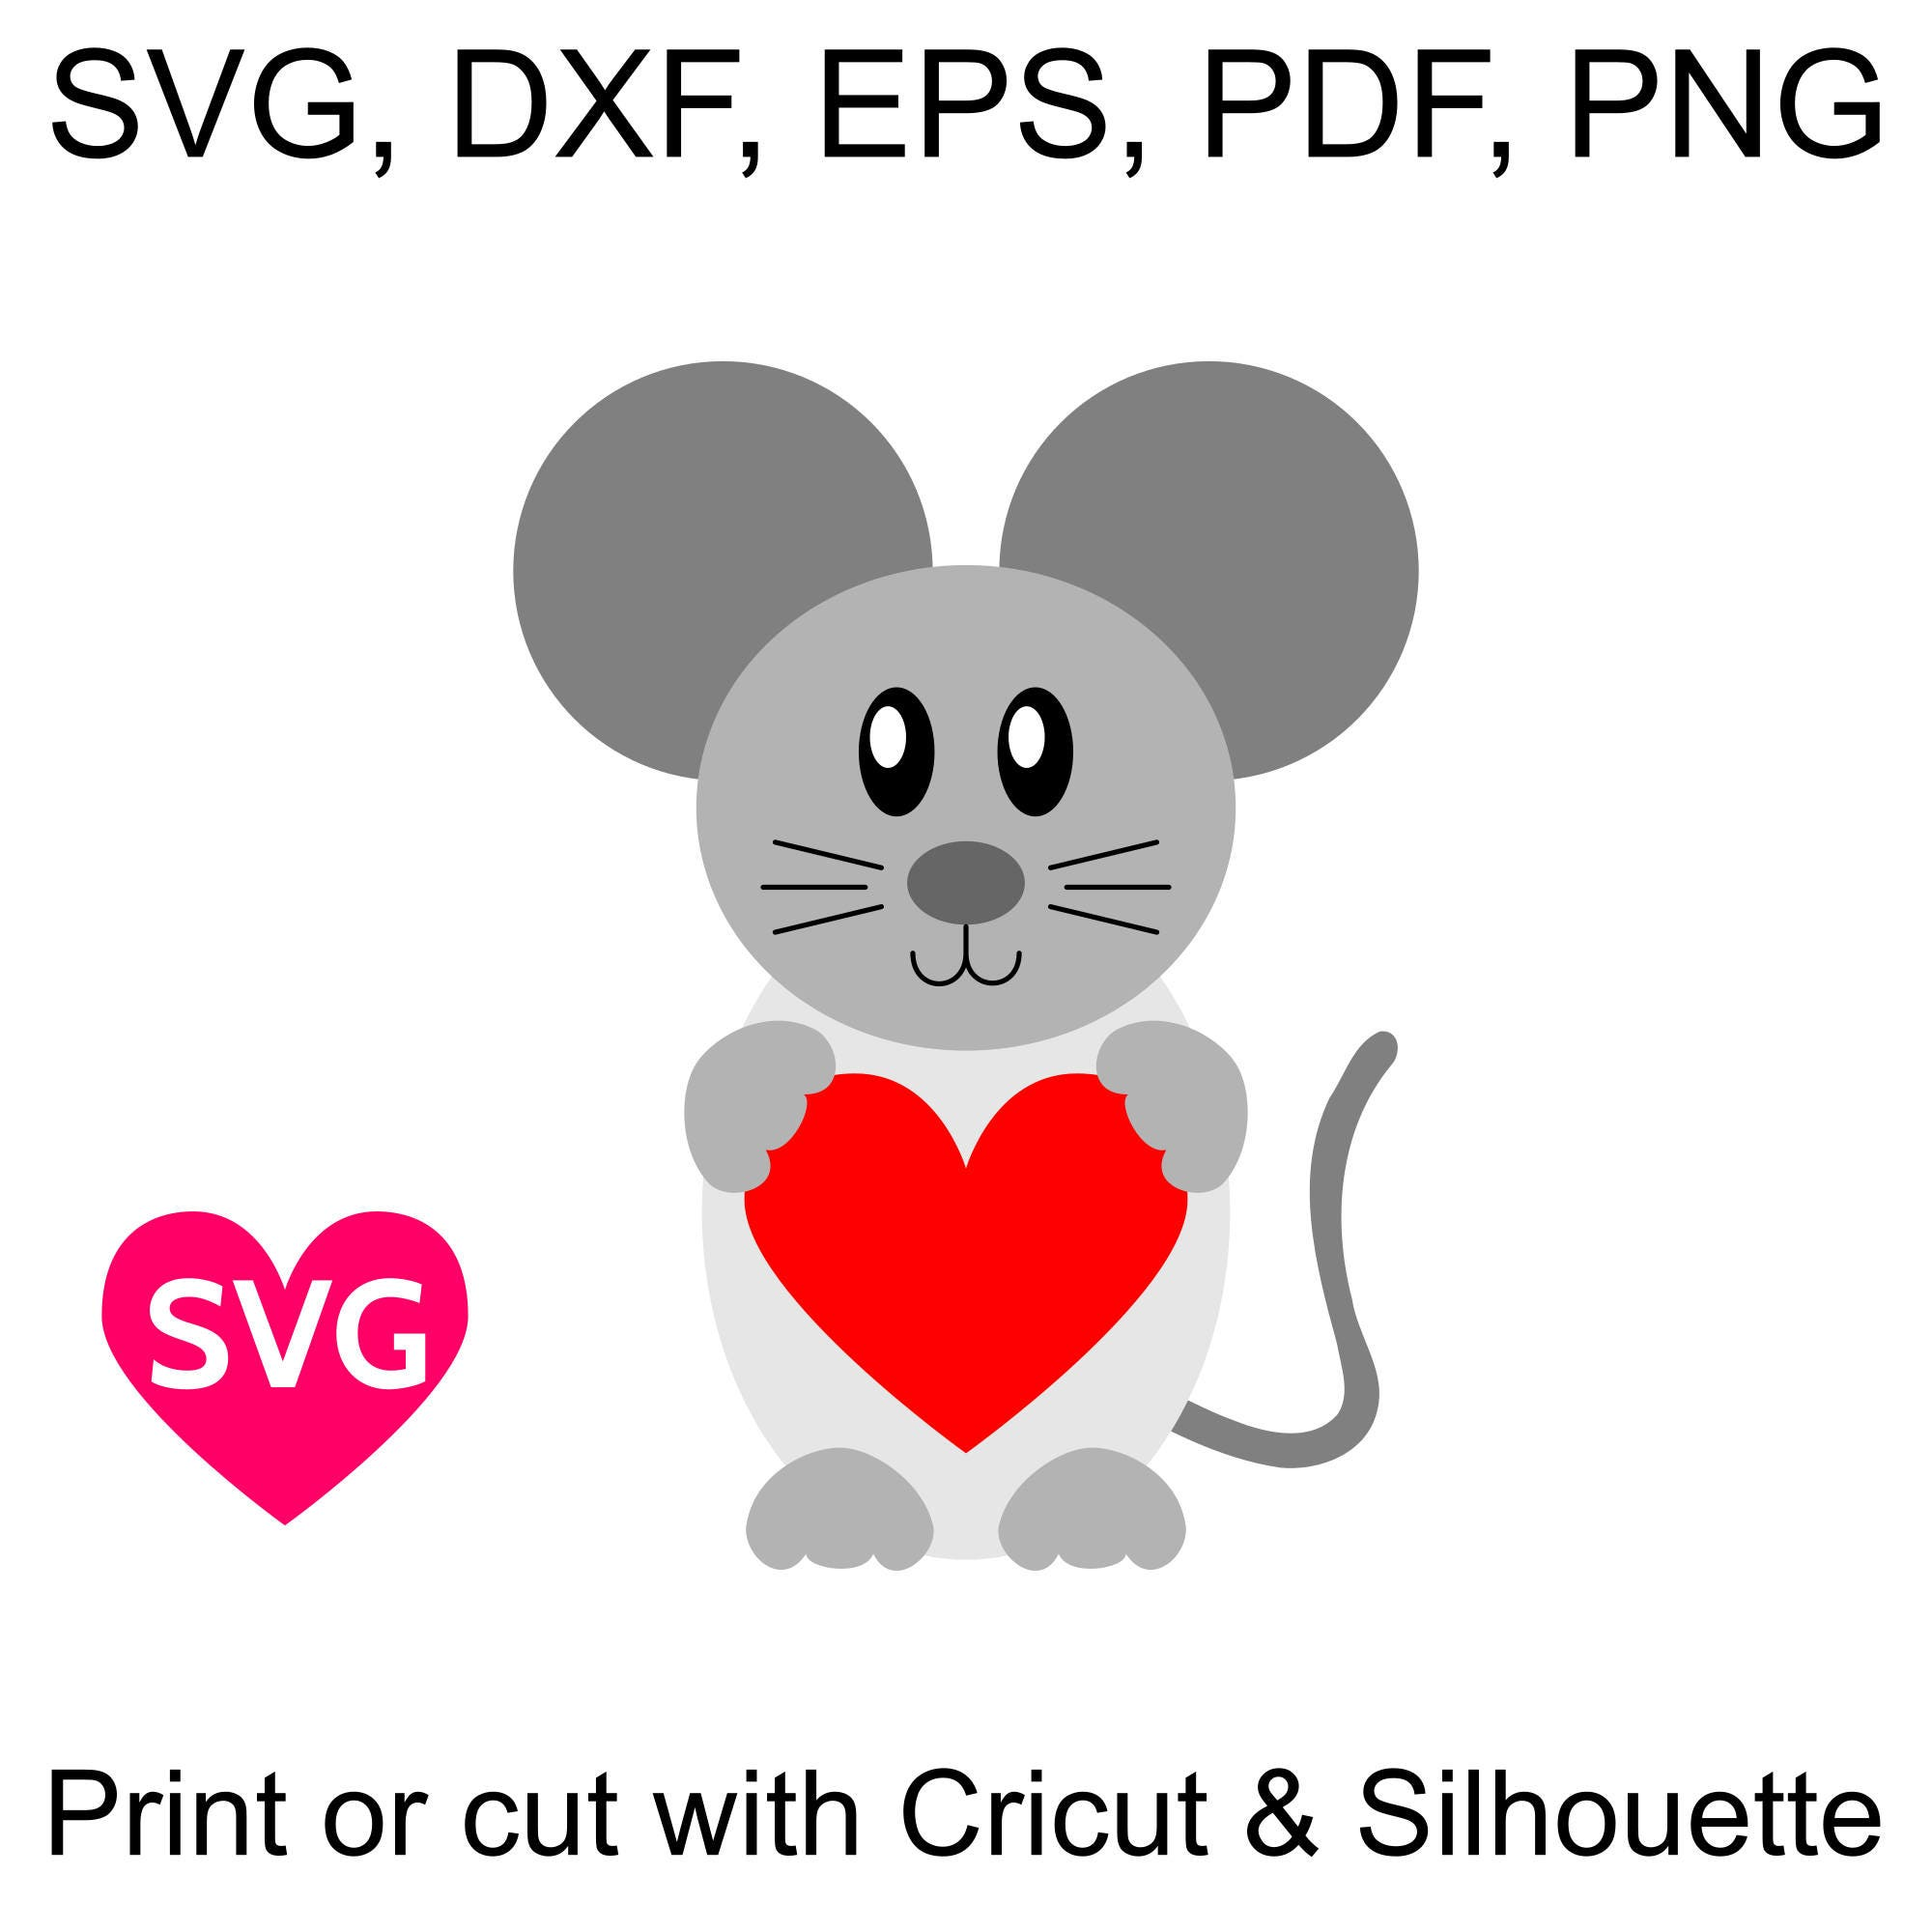 Very Cute Pink Blue And Grey Love Mouse Svg Files For Valentine S Day Cards And Gifts